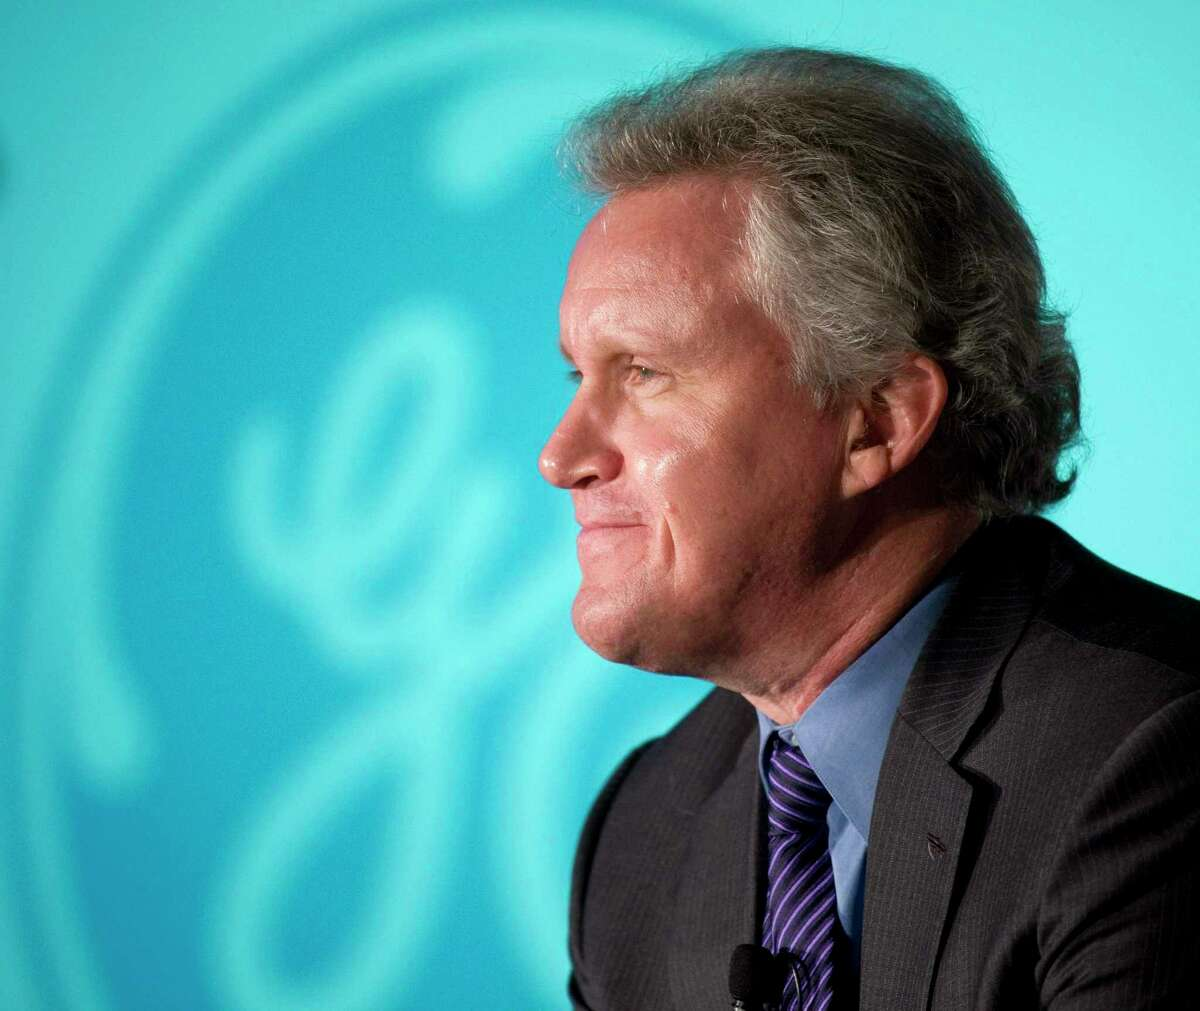 Jeffrey Immelt in November 2008 while CEO of General Electric, in New York City. (AP Photo/Mark Lennihan, file)